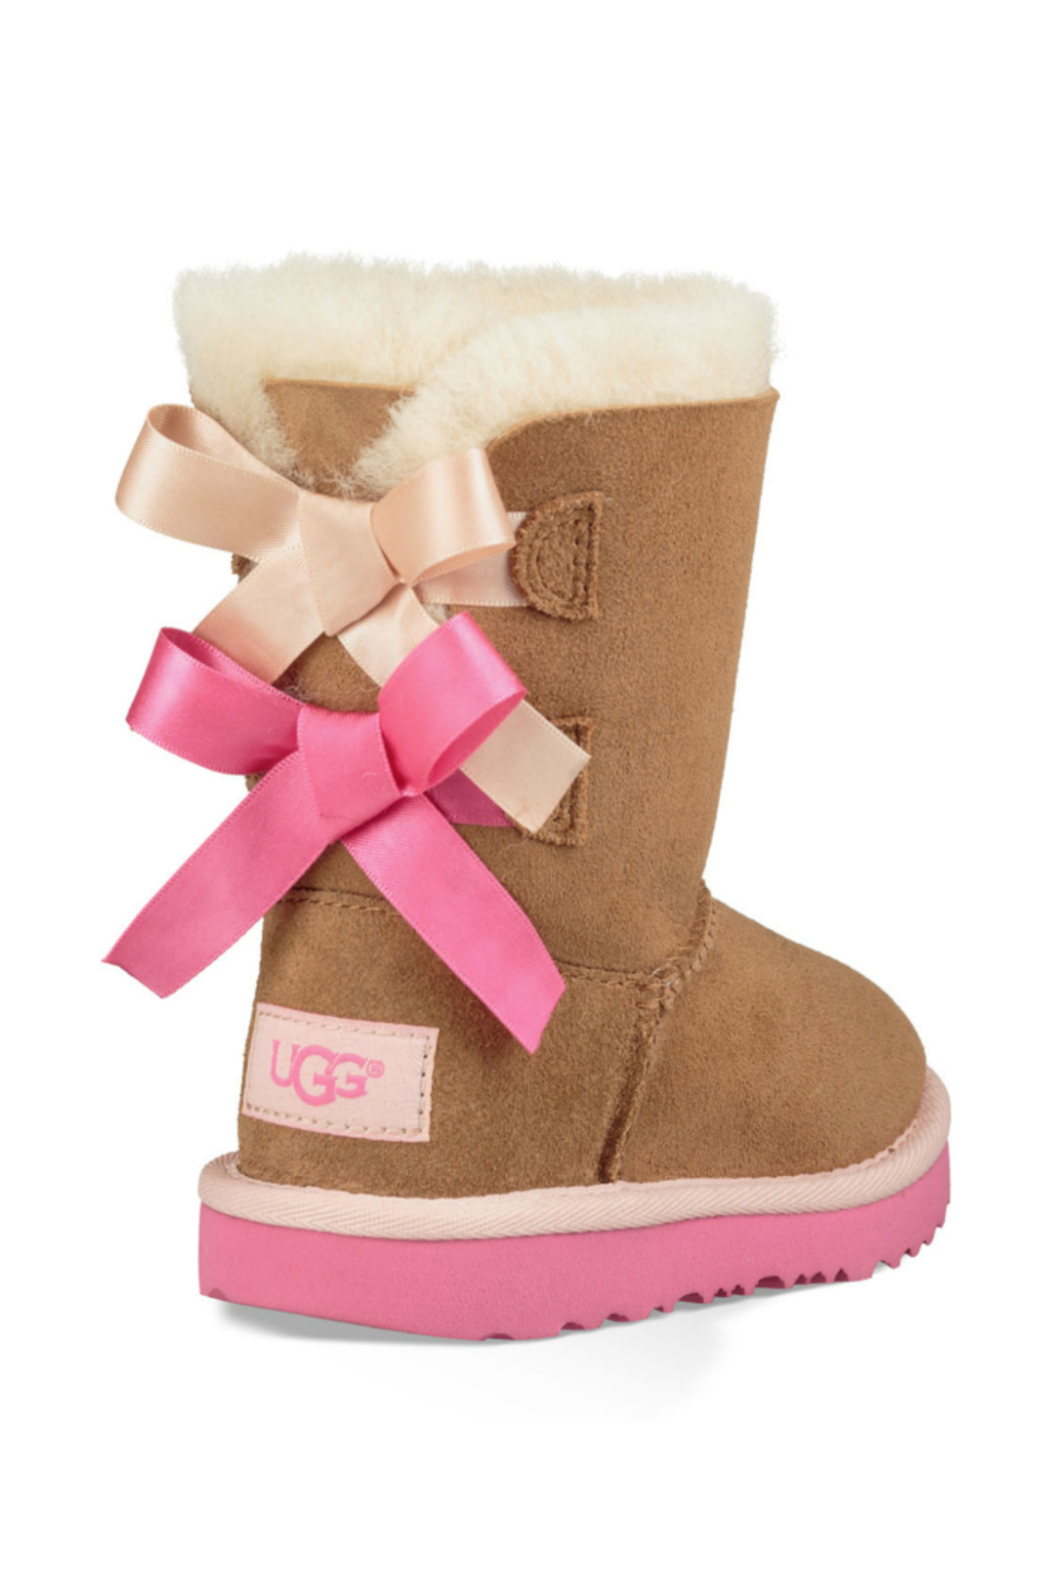 6bd4b6f5546 UGG Australia TODDLER BAILEY BOW from New Jersey by Suburban Shoes ...